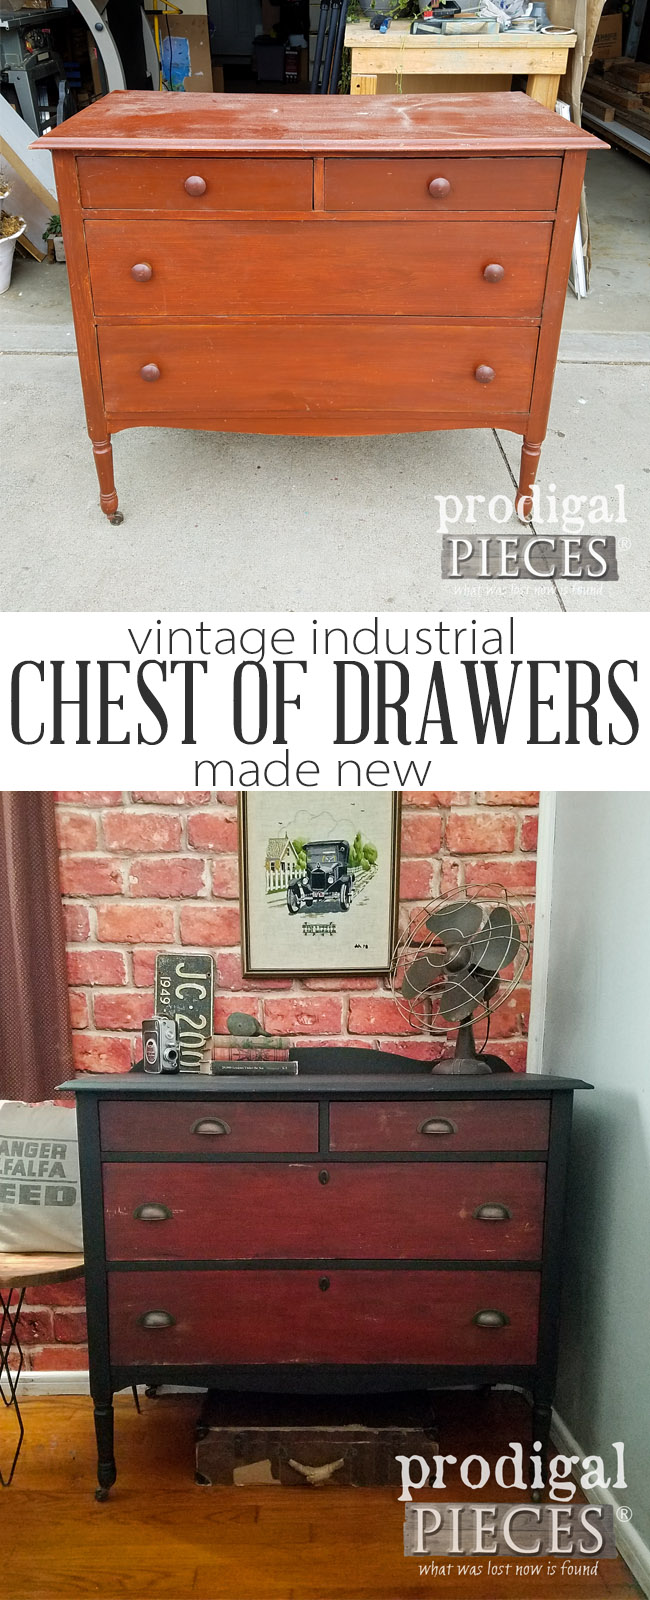 Sweet! This vintage pieces gets updated to a rustic industrial chest of drawers with paint and stain. See the makeover in action at Prodigal Pieces | prodigalpieces.com